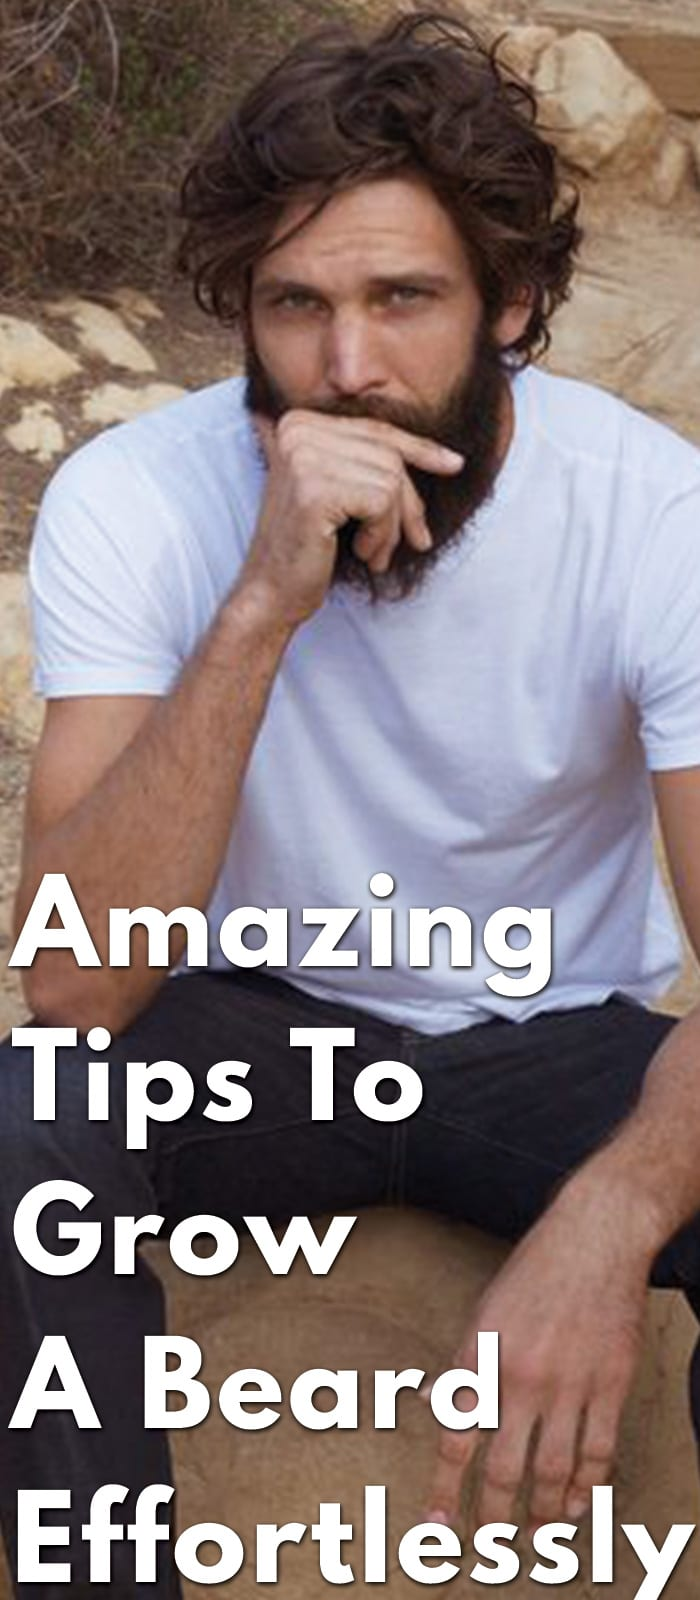 Amazing-Tips-To-Grow-A-Beard-Effortlessly.